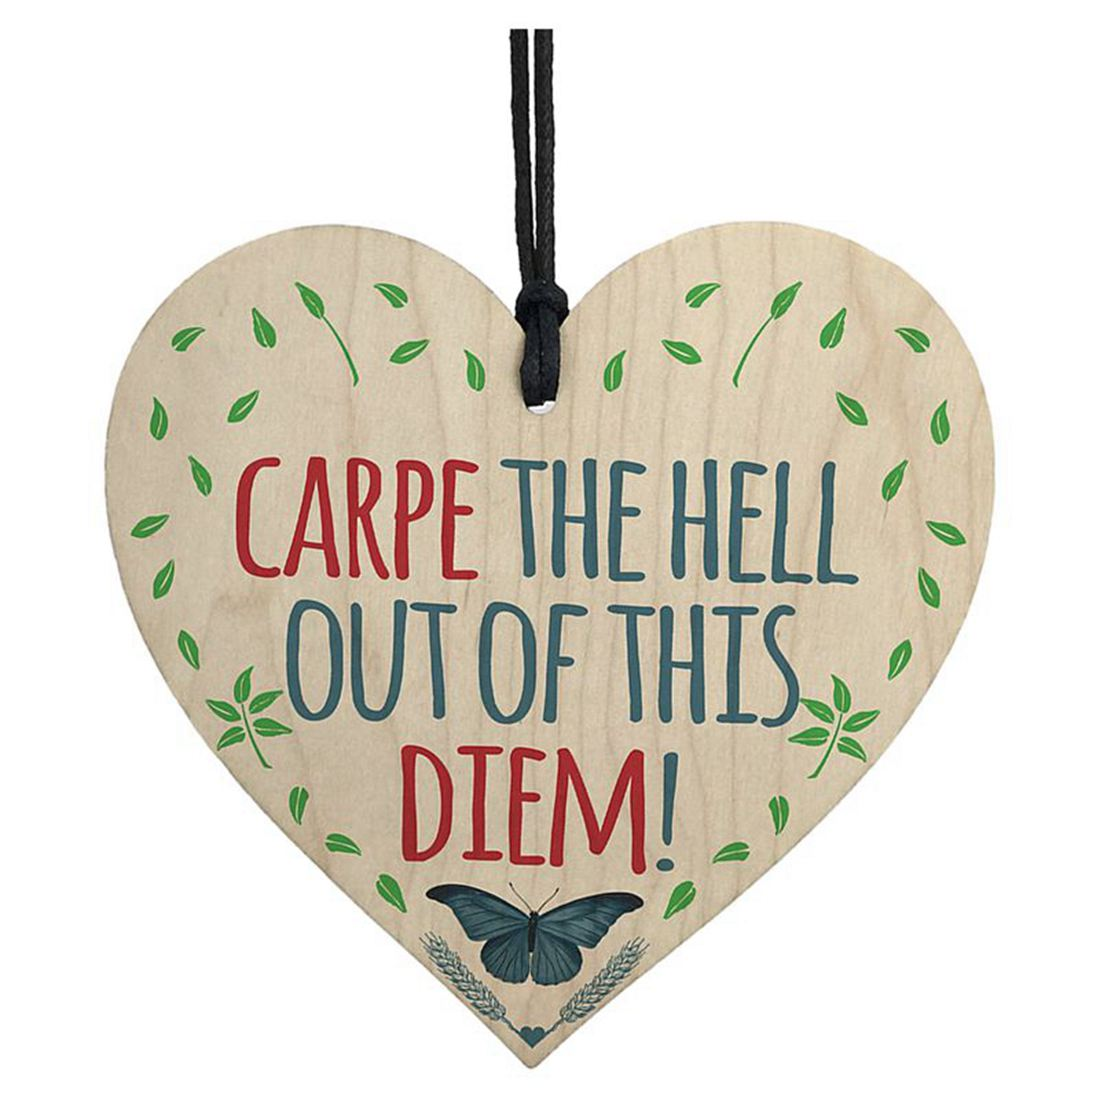 HOT SALE CARPE The Hell Out Of This DIEM! Motivational Hanging Heart Friendship Gift Sig ...